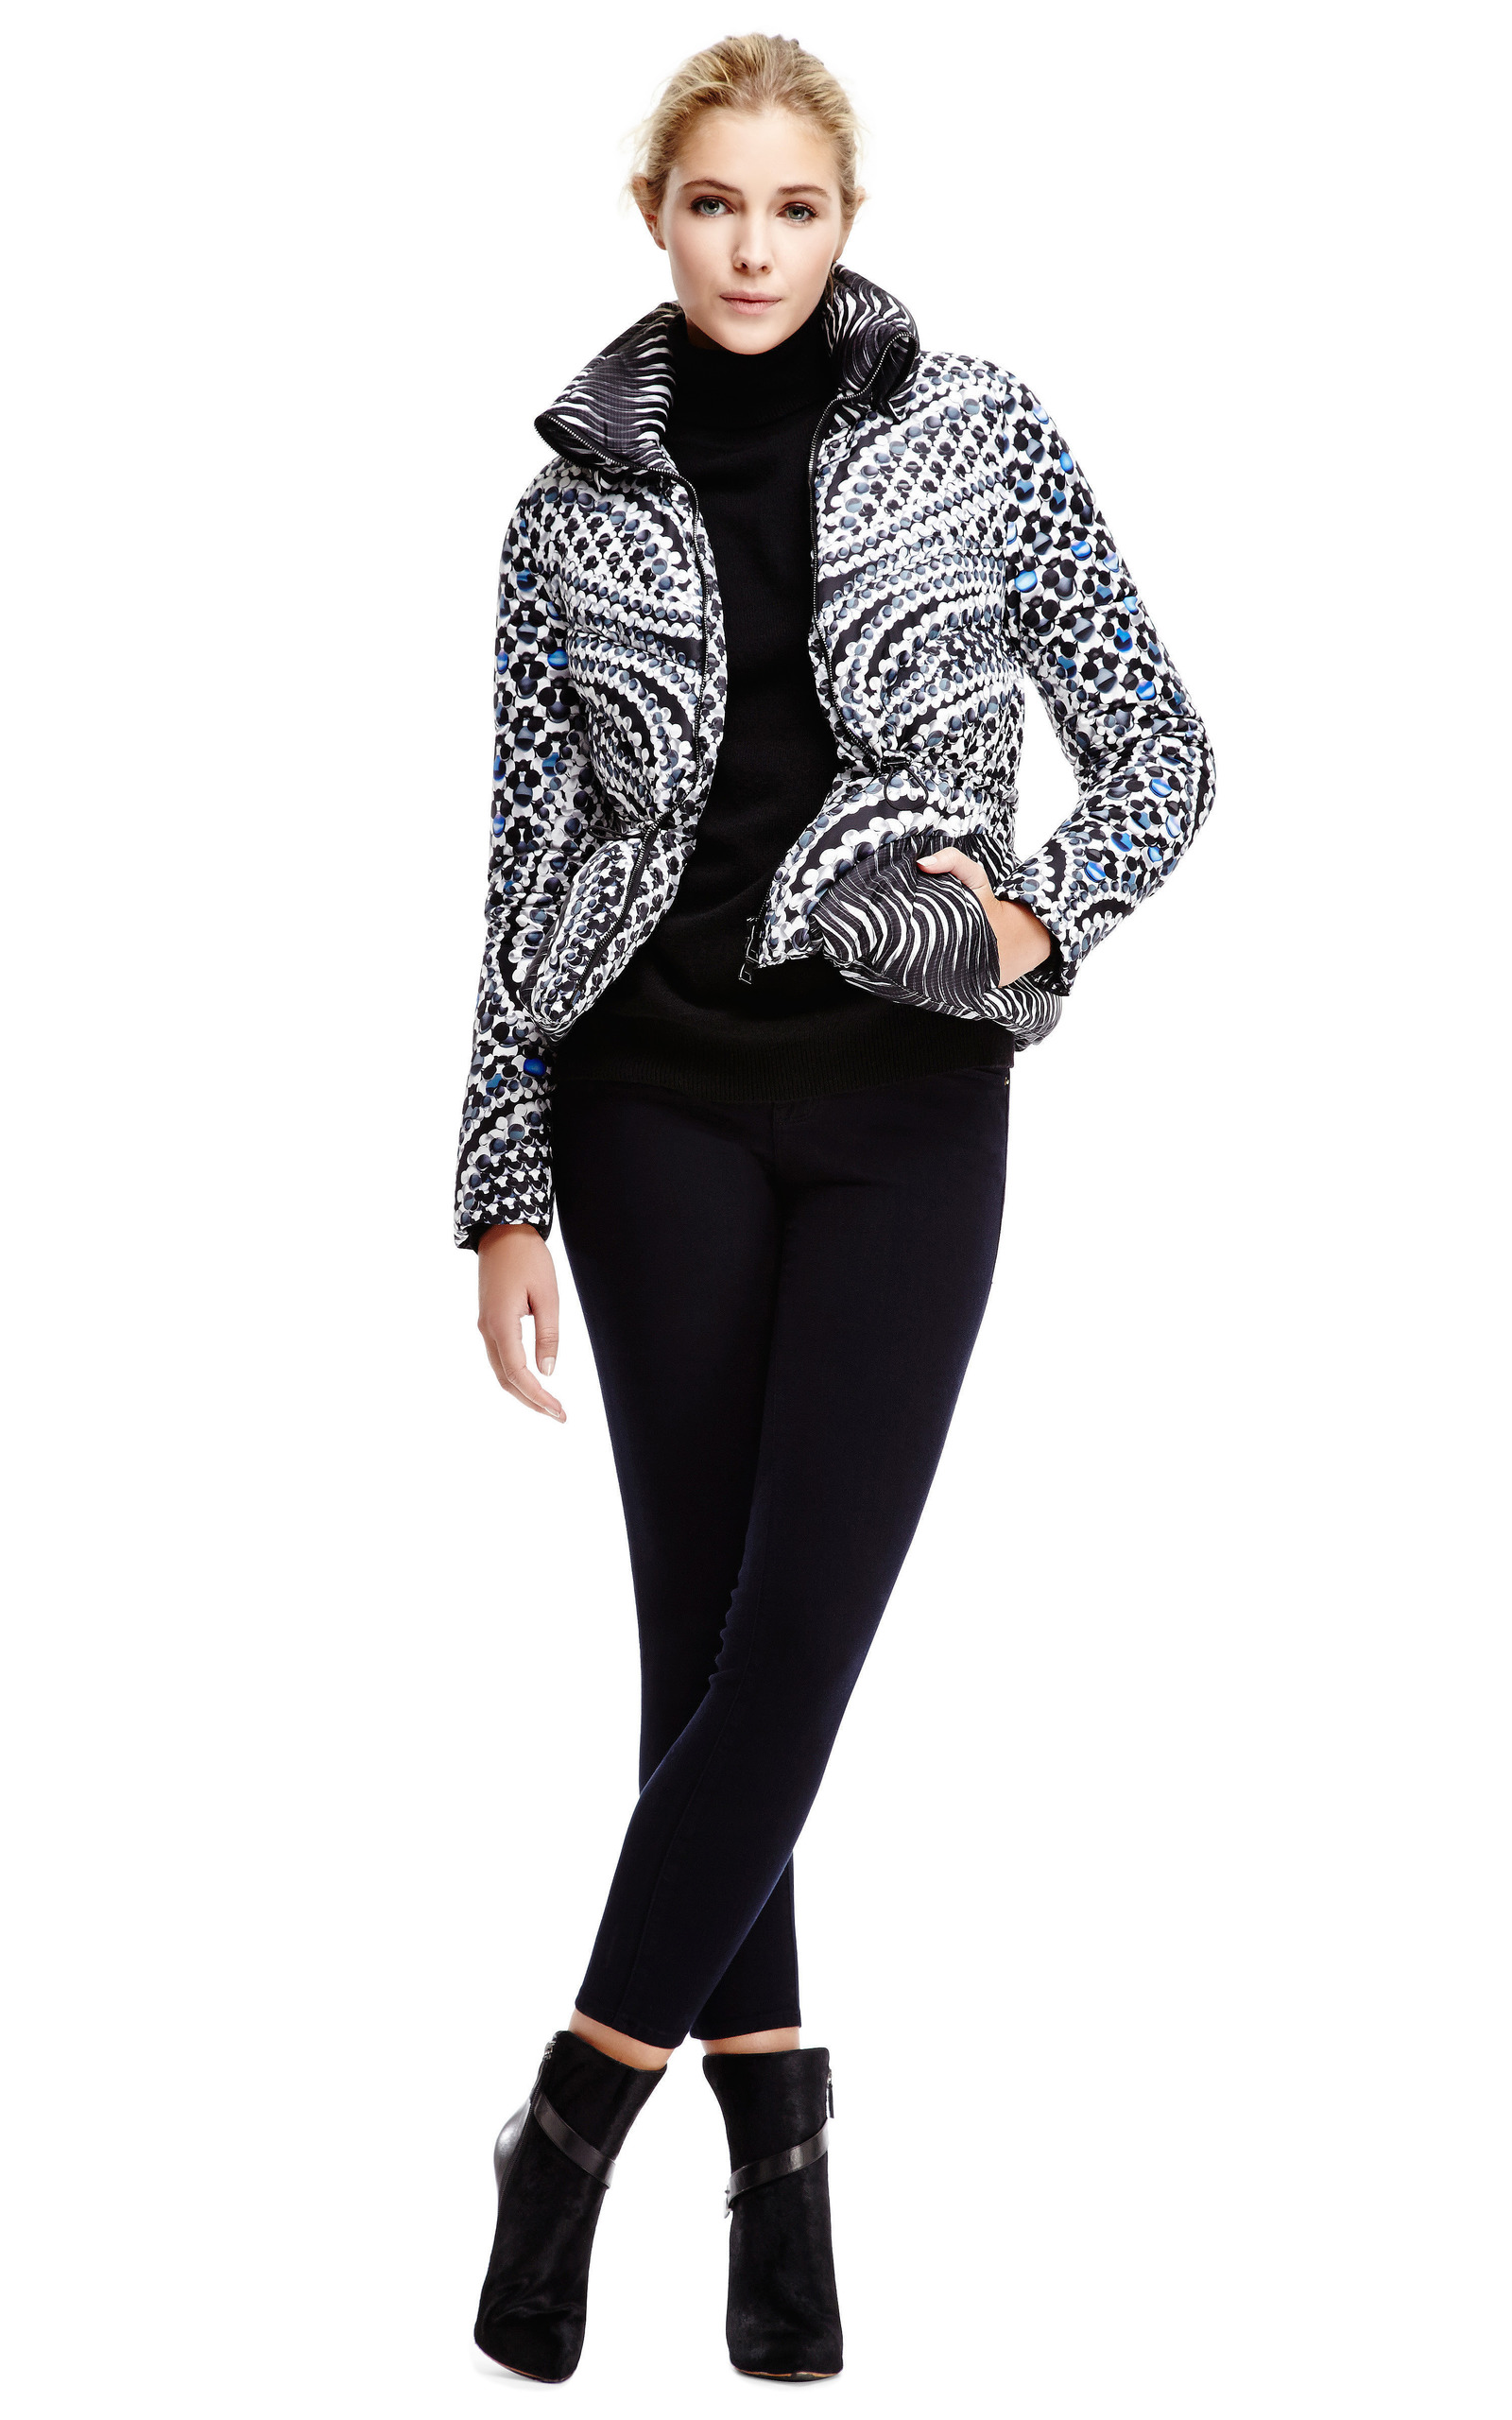 Peter Pilotto Printed Down Jacket Buy Cheap Clearance Store View Online Cheapest For Sale 9I5aFu9i